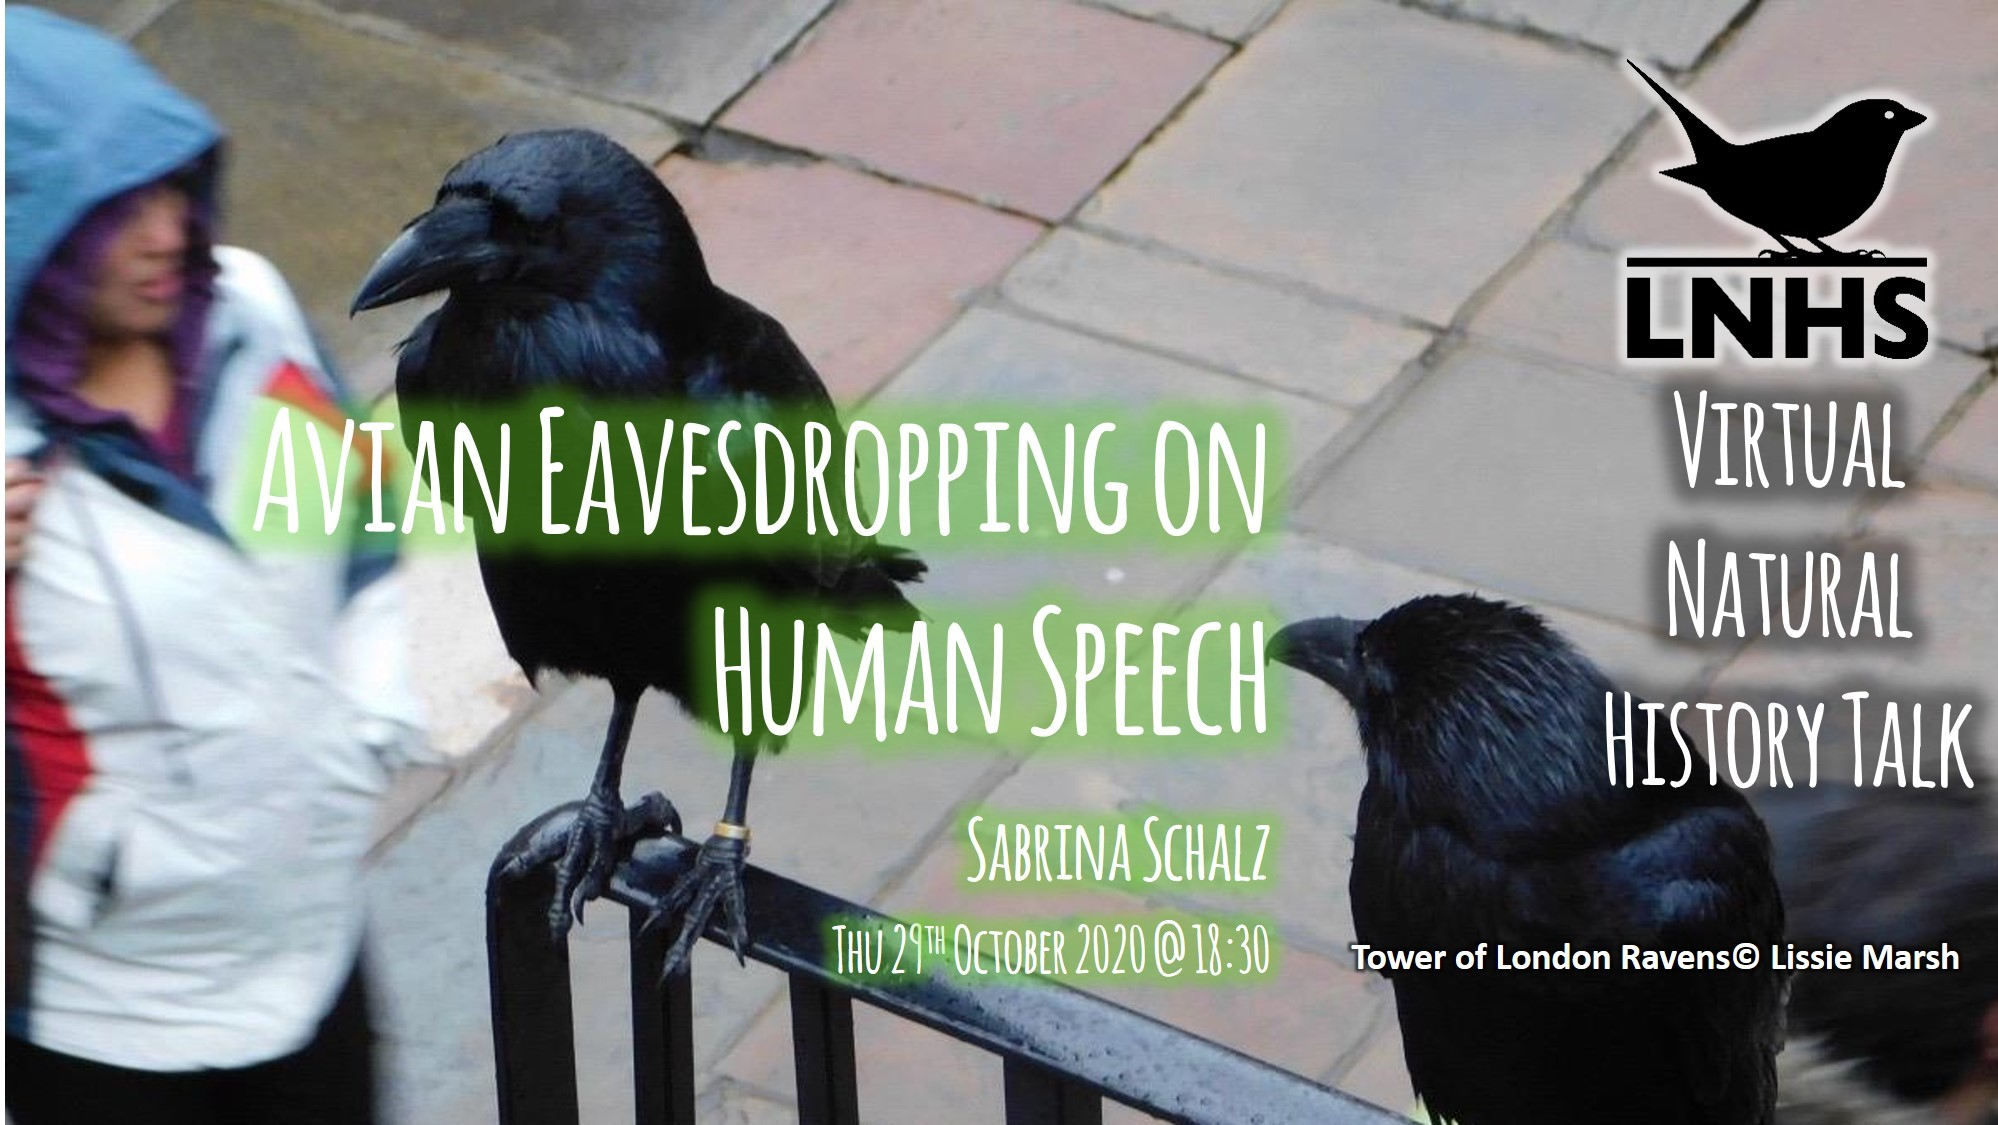 Avian Eavesdropping on Human Speech